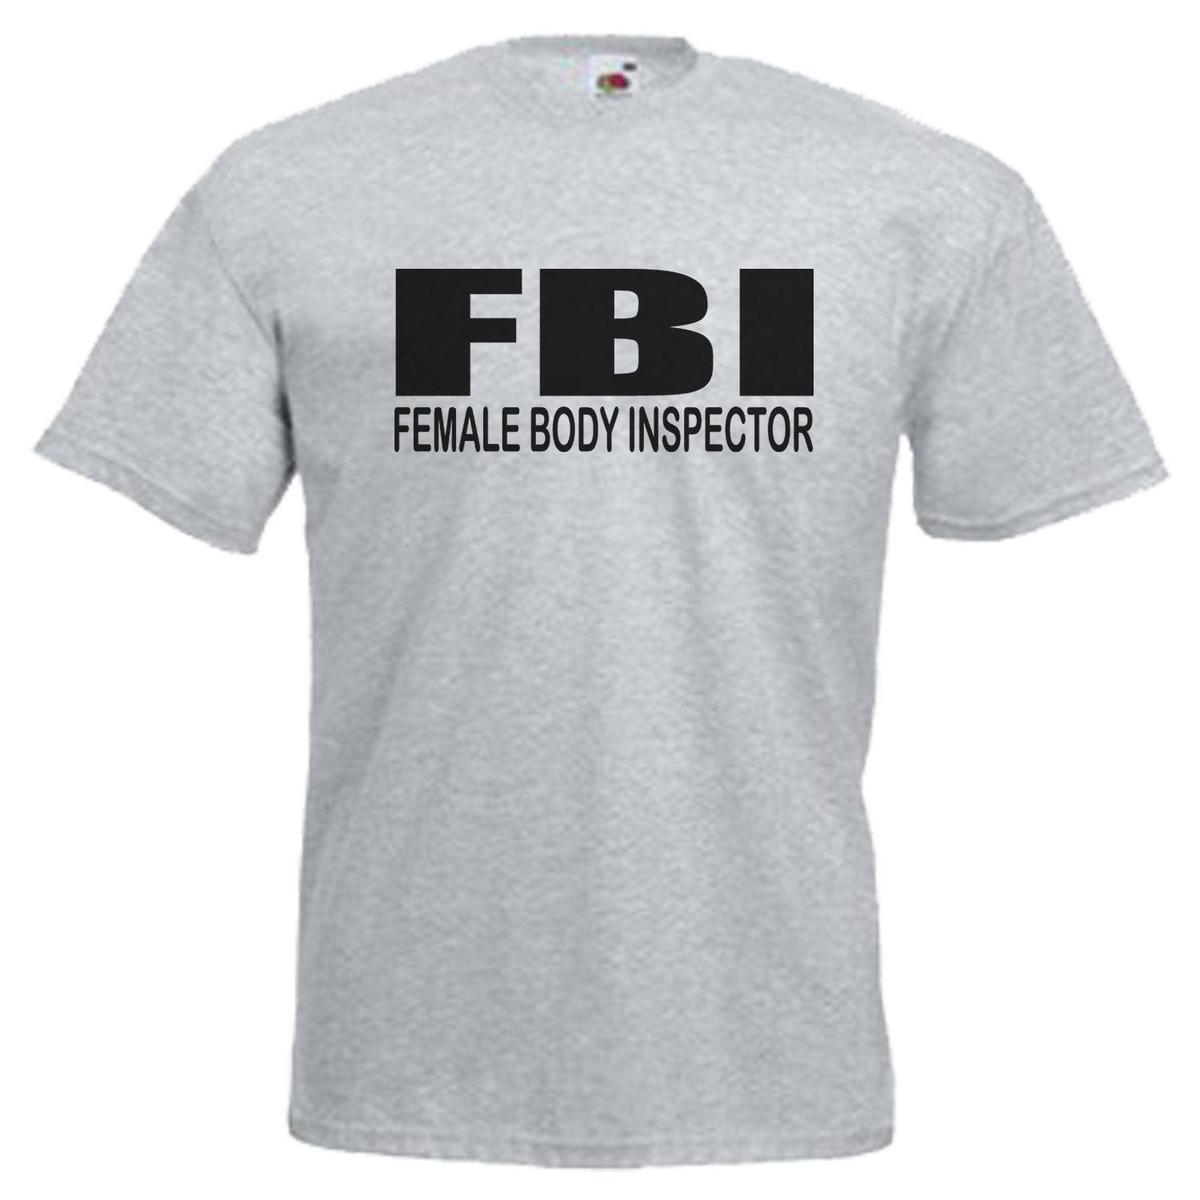 885d5a61 FBI Female Body Inspector Adults Mens T Shirt 12 Colours Size S 3XL T Shirt  Over Shirt Best T Shirt Site From Yuxin0006, $14.67| DHgate.Com